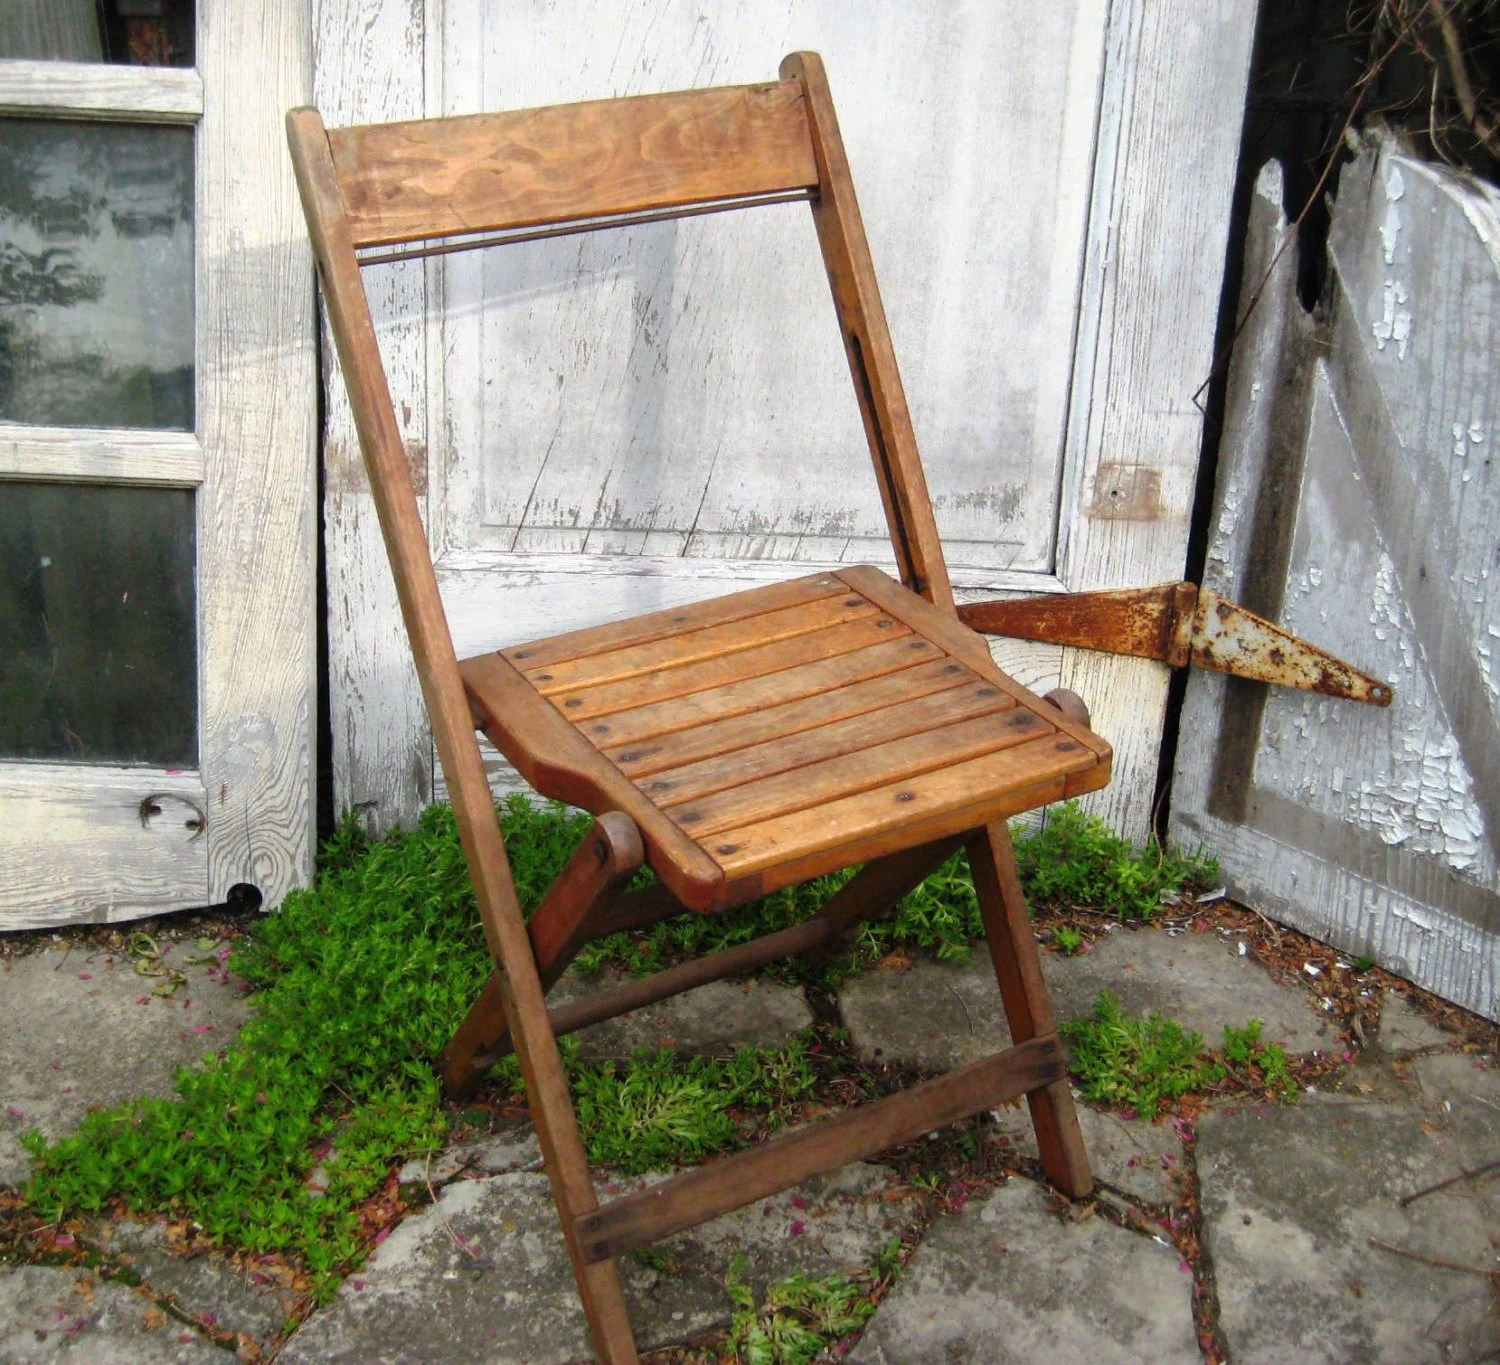 Country Kitchen Chairs Pair Of Wood Folding Chair Wood Slat Chair Two Vintage Chairs Farmhouse Country Kitchen Chairs